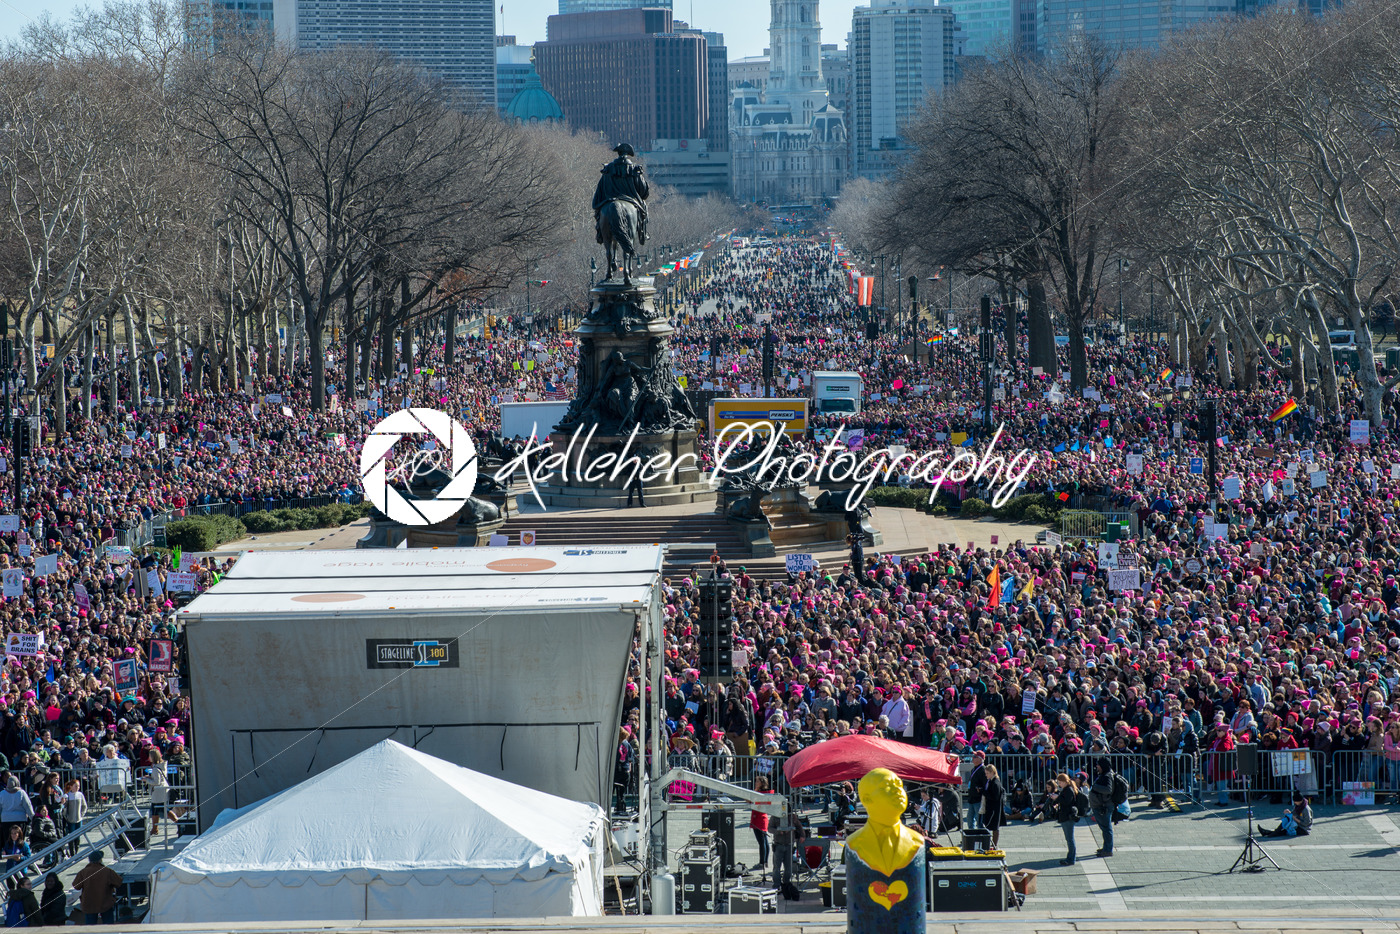 Philadelphia, Pennsylvania, USA – January 20, 2018: Thousands in Philadelphia unite in solidarity with the Women's March. - Kelleher Photography Store